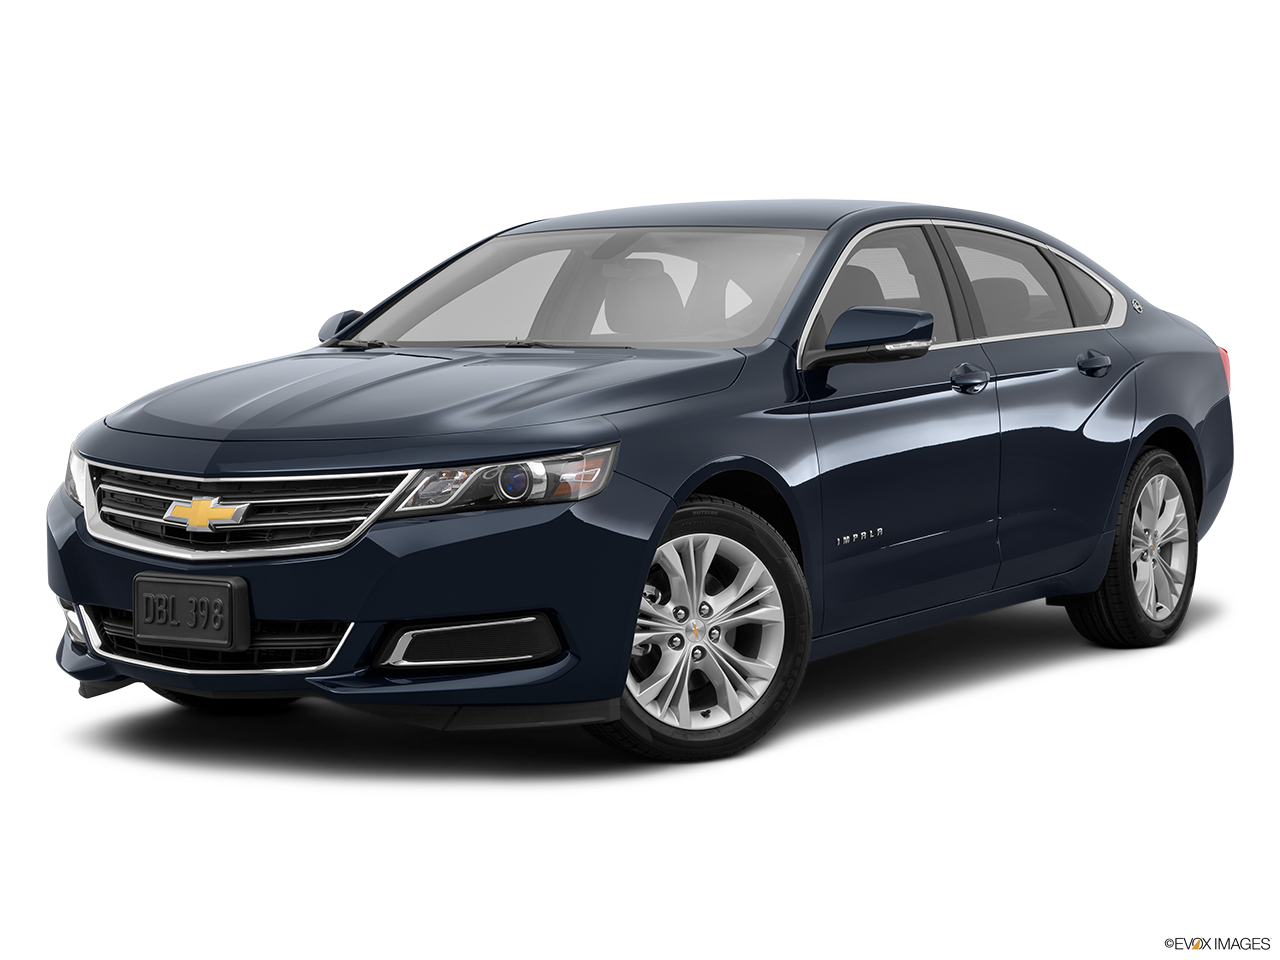 2016 chevrolet impala | jackson chevrolet serving decatur tuscola